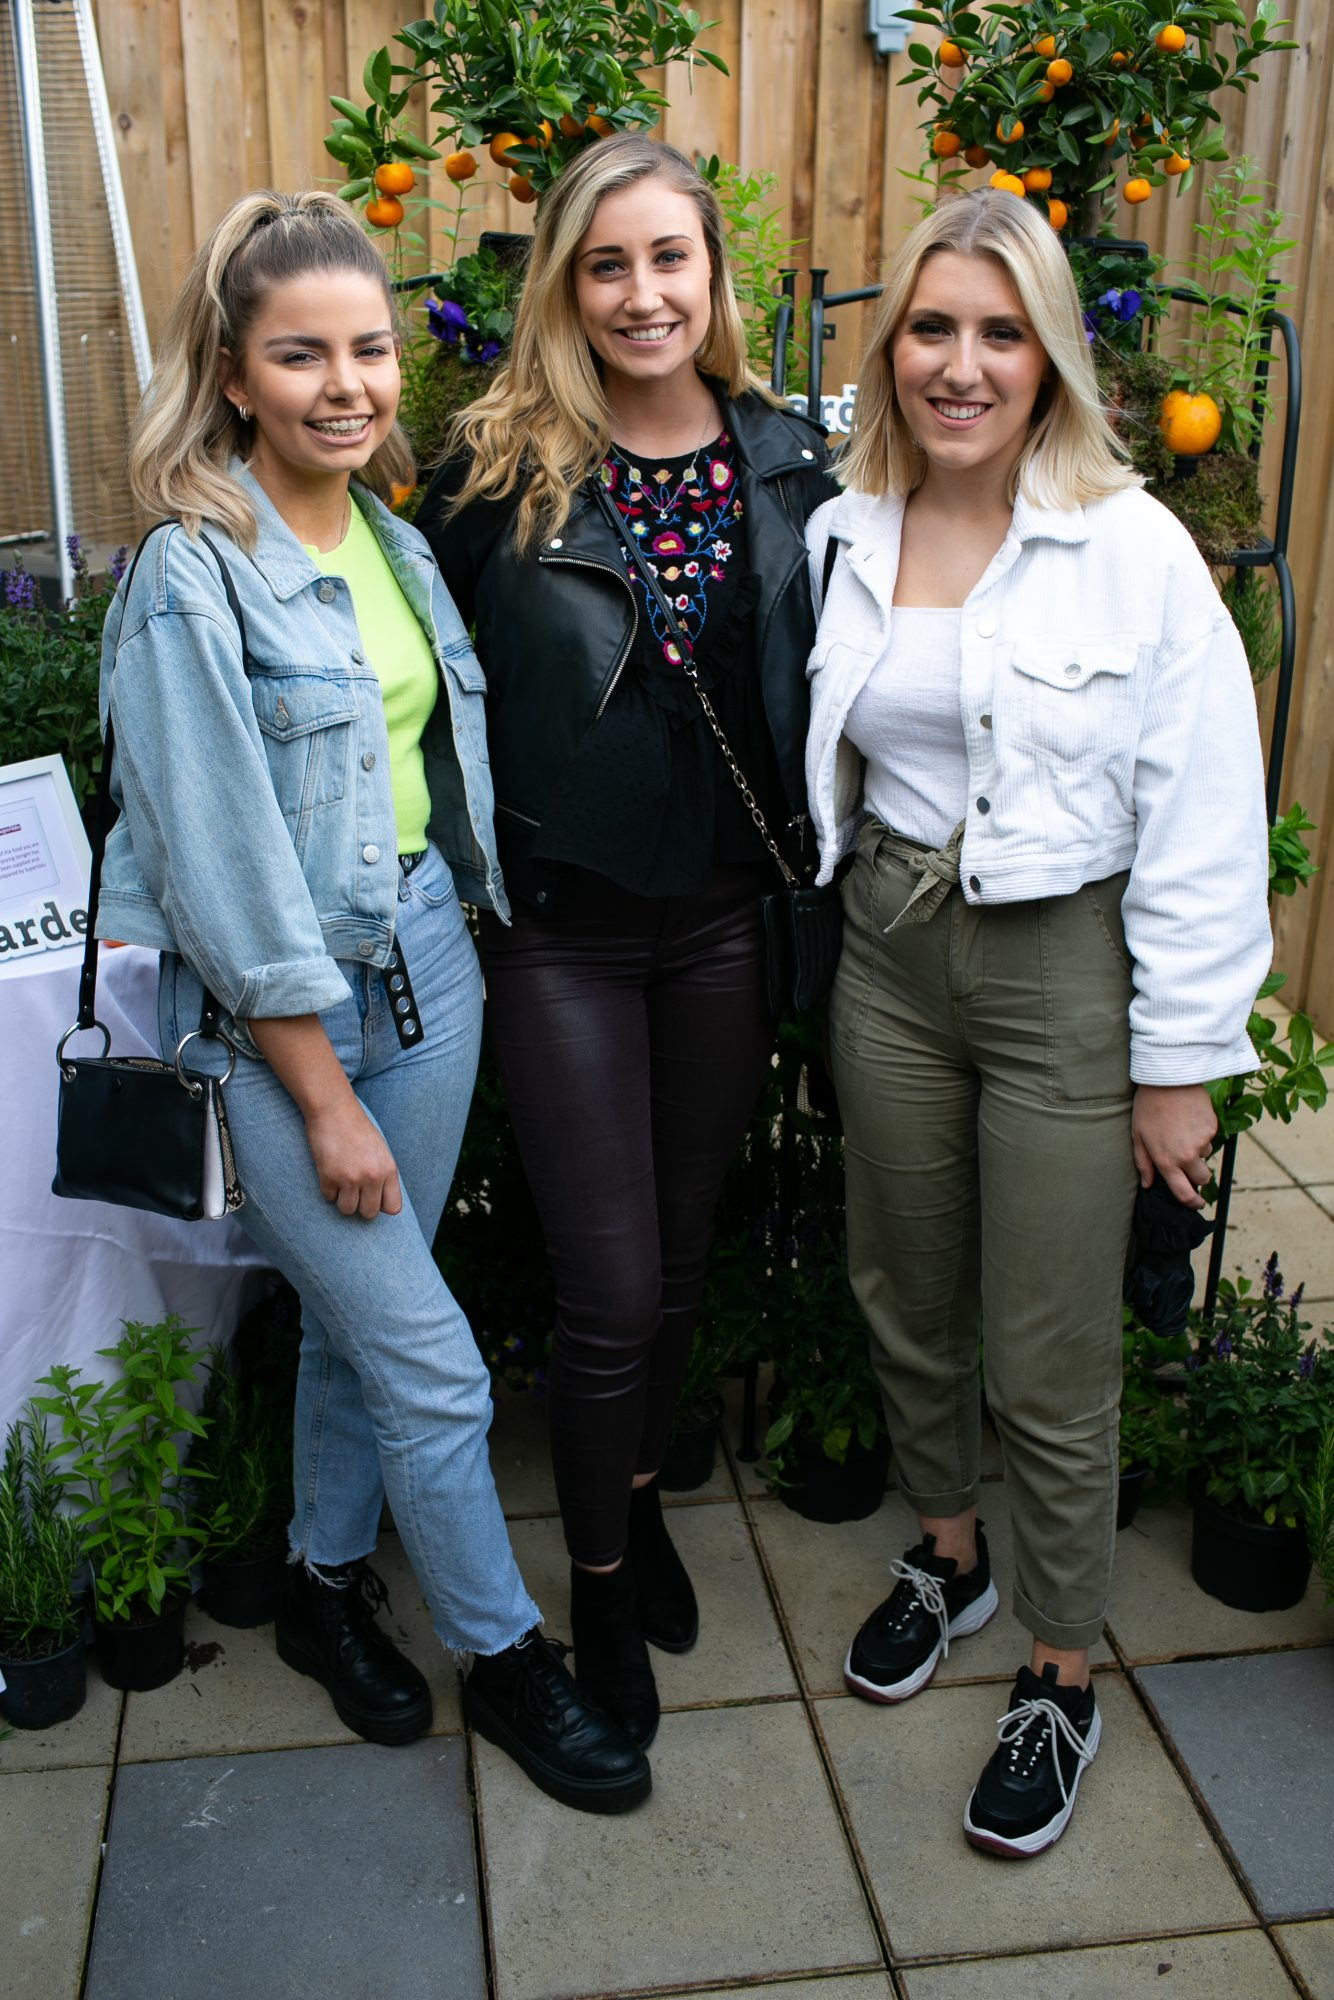 Faye Moore, Fifi Heather and Roisín Costello at the SuperValu Gin Garden held at Opium Rooftop Garden, Dublin.